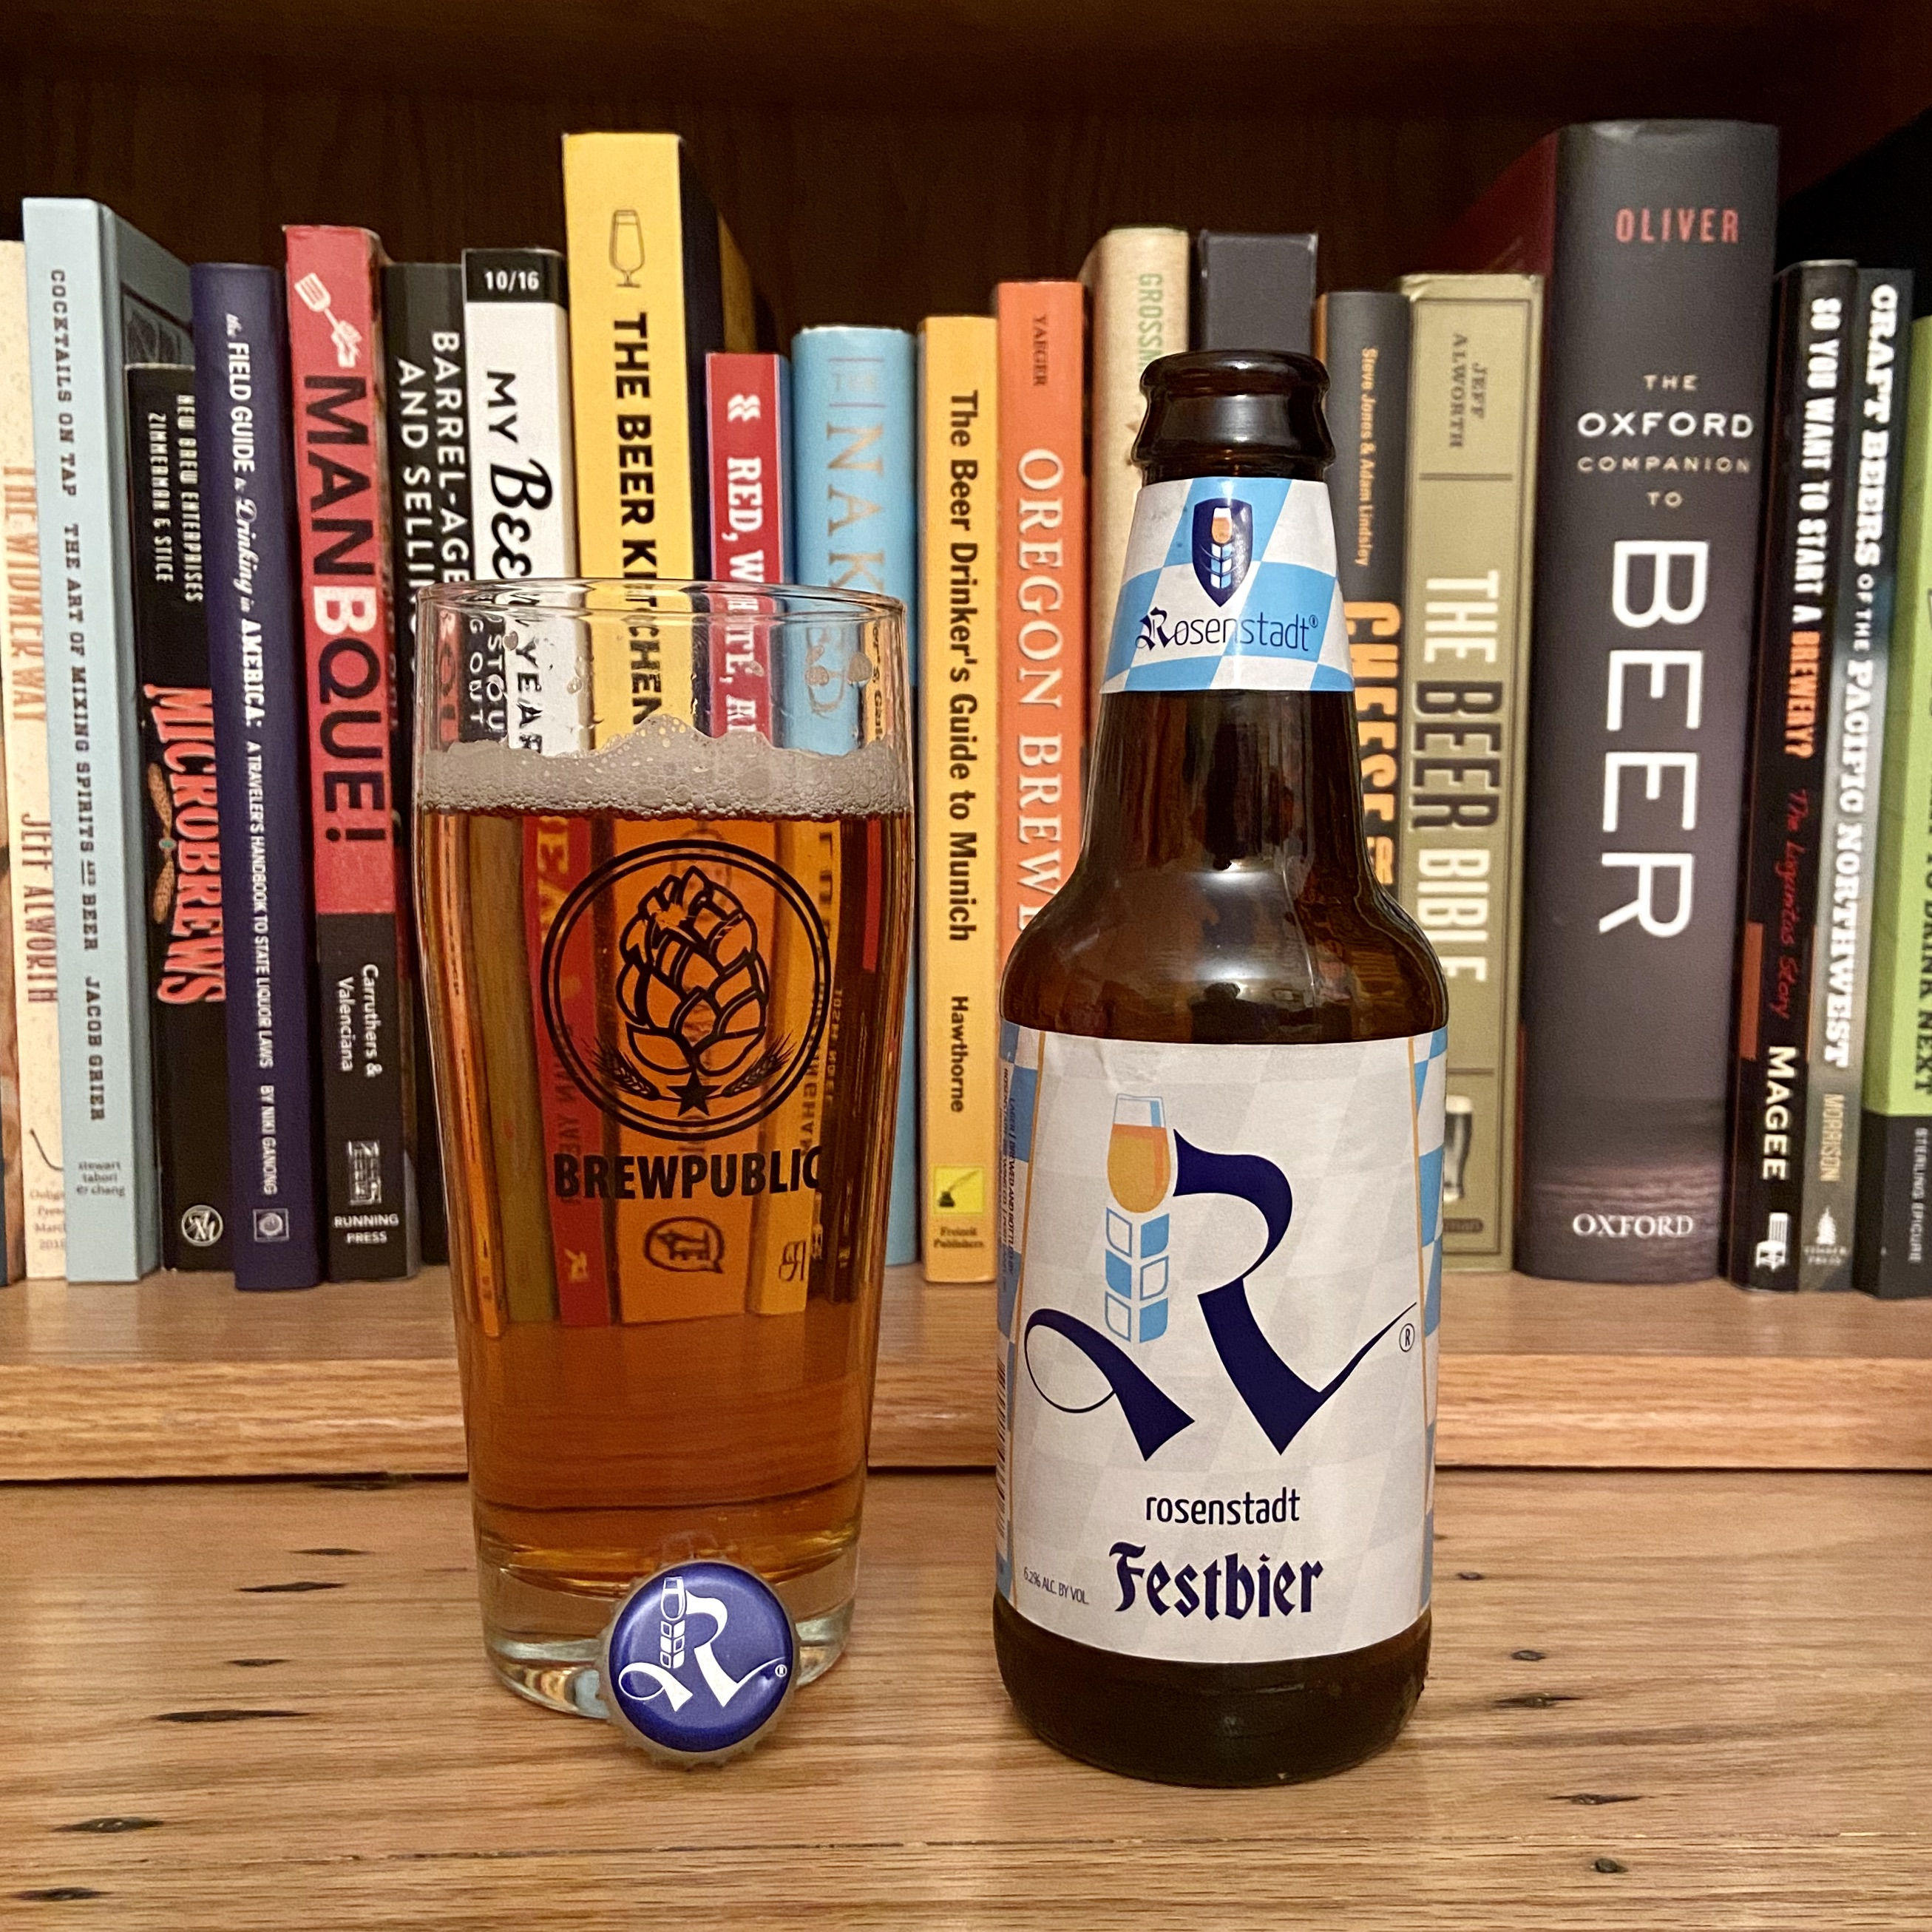 Rosenstady Brewery Festbier pours a well filtered light amber hue.